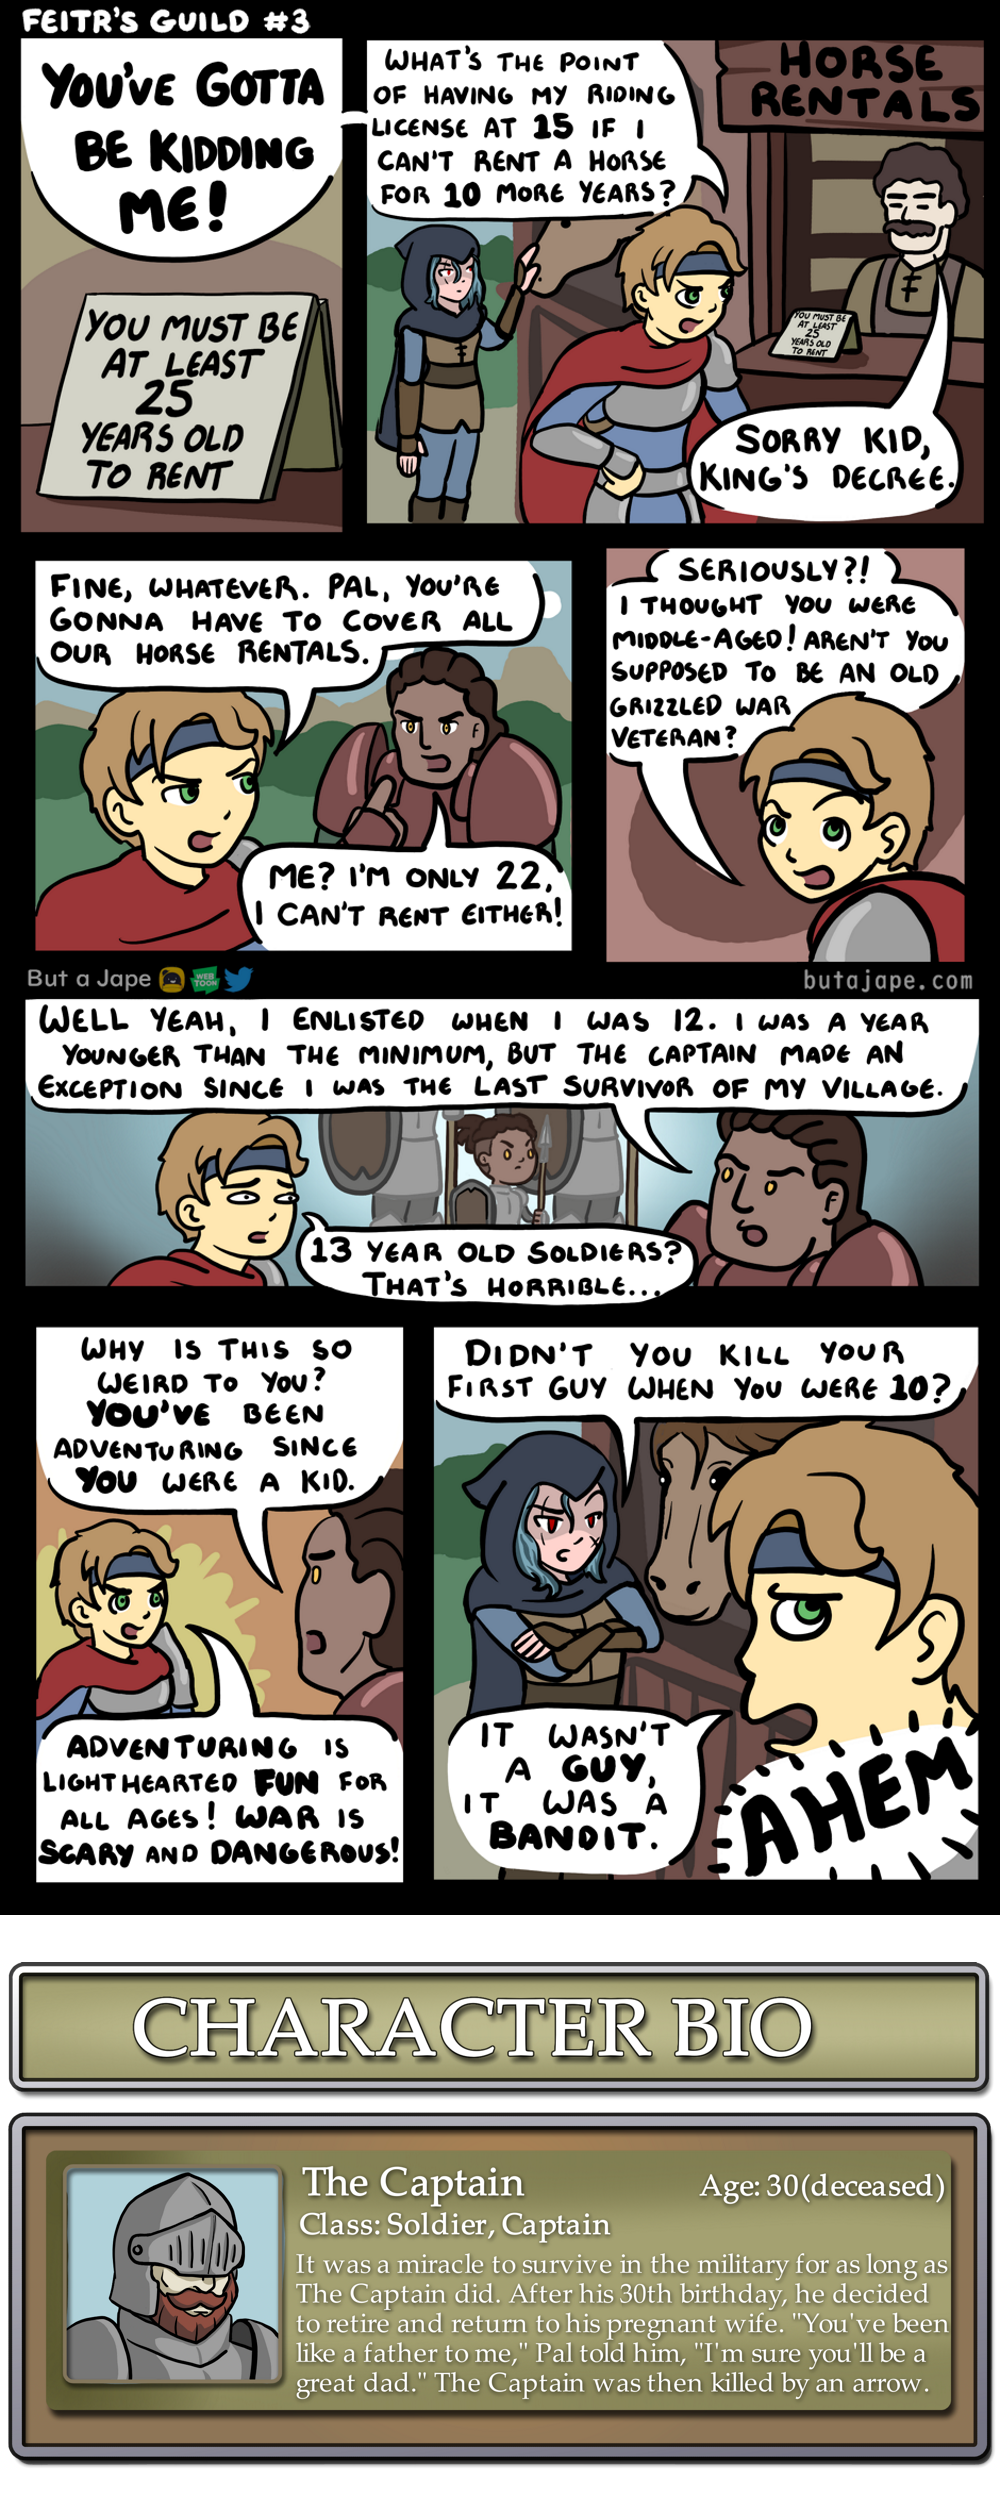 age appropriate adventuring anime ages part 1 comic